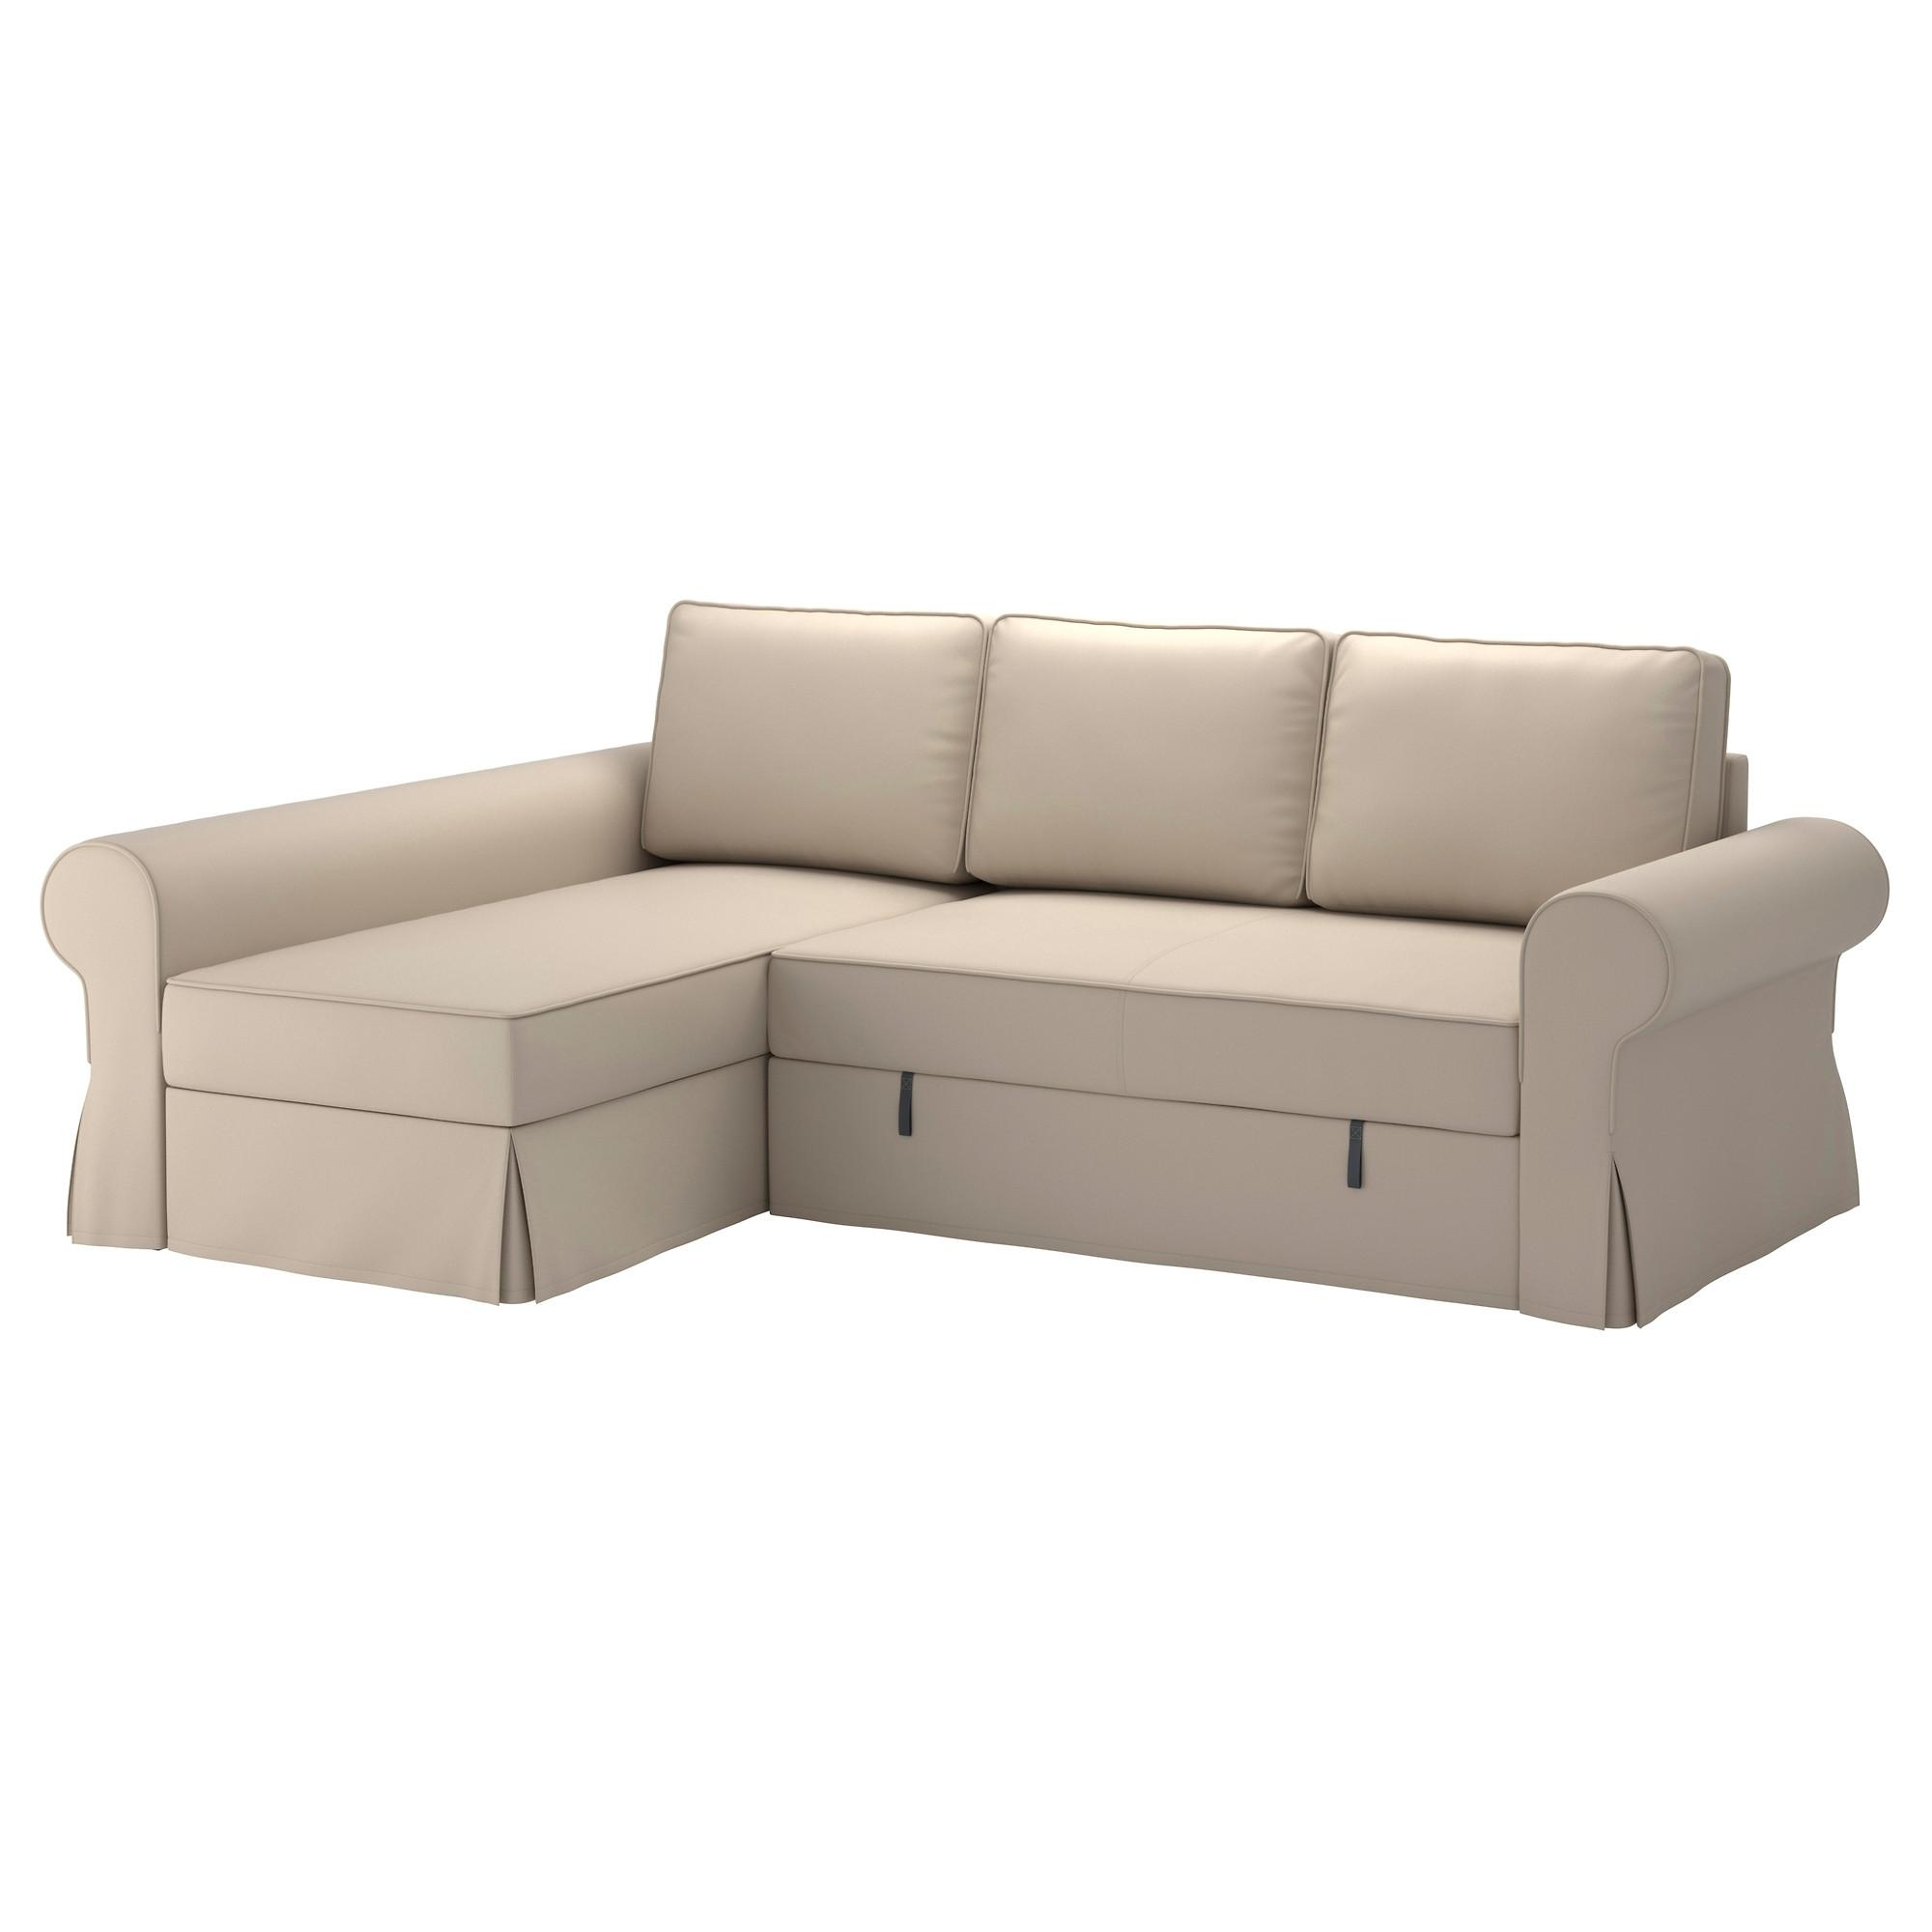 20 best ideas chaise longue sofa beds sofa ideas for Chaise longue furniture